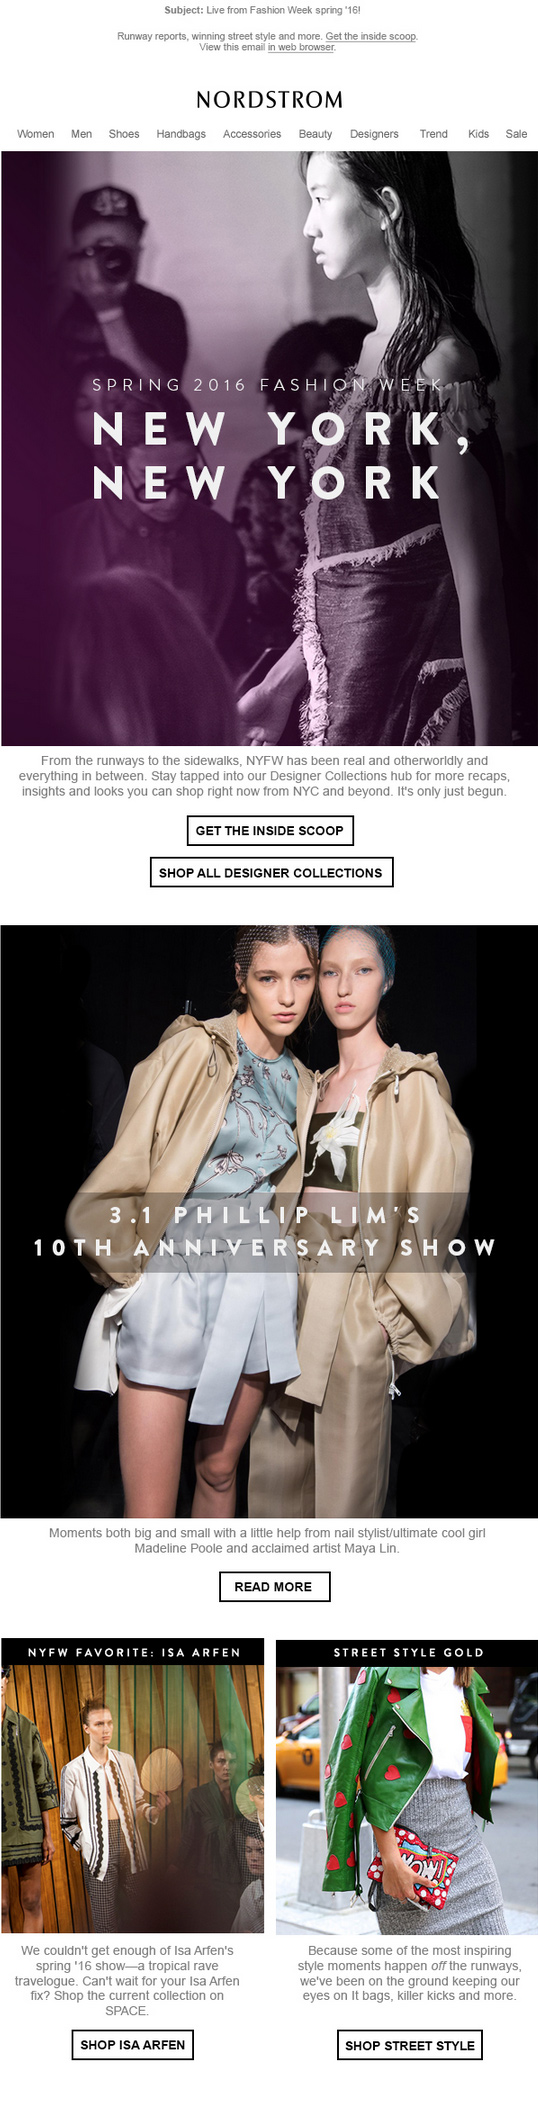 NYFW 24-HR EMAIL